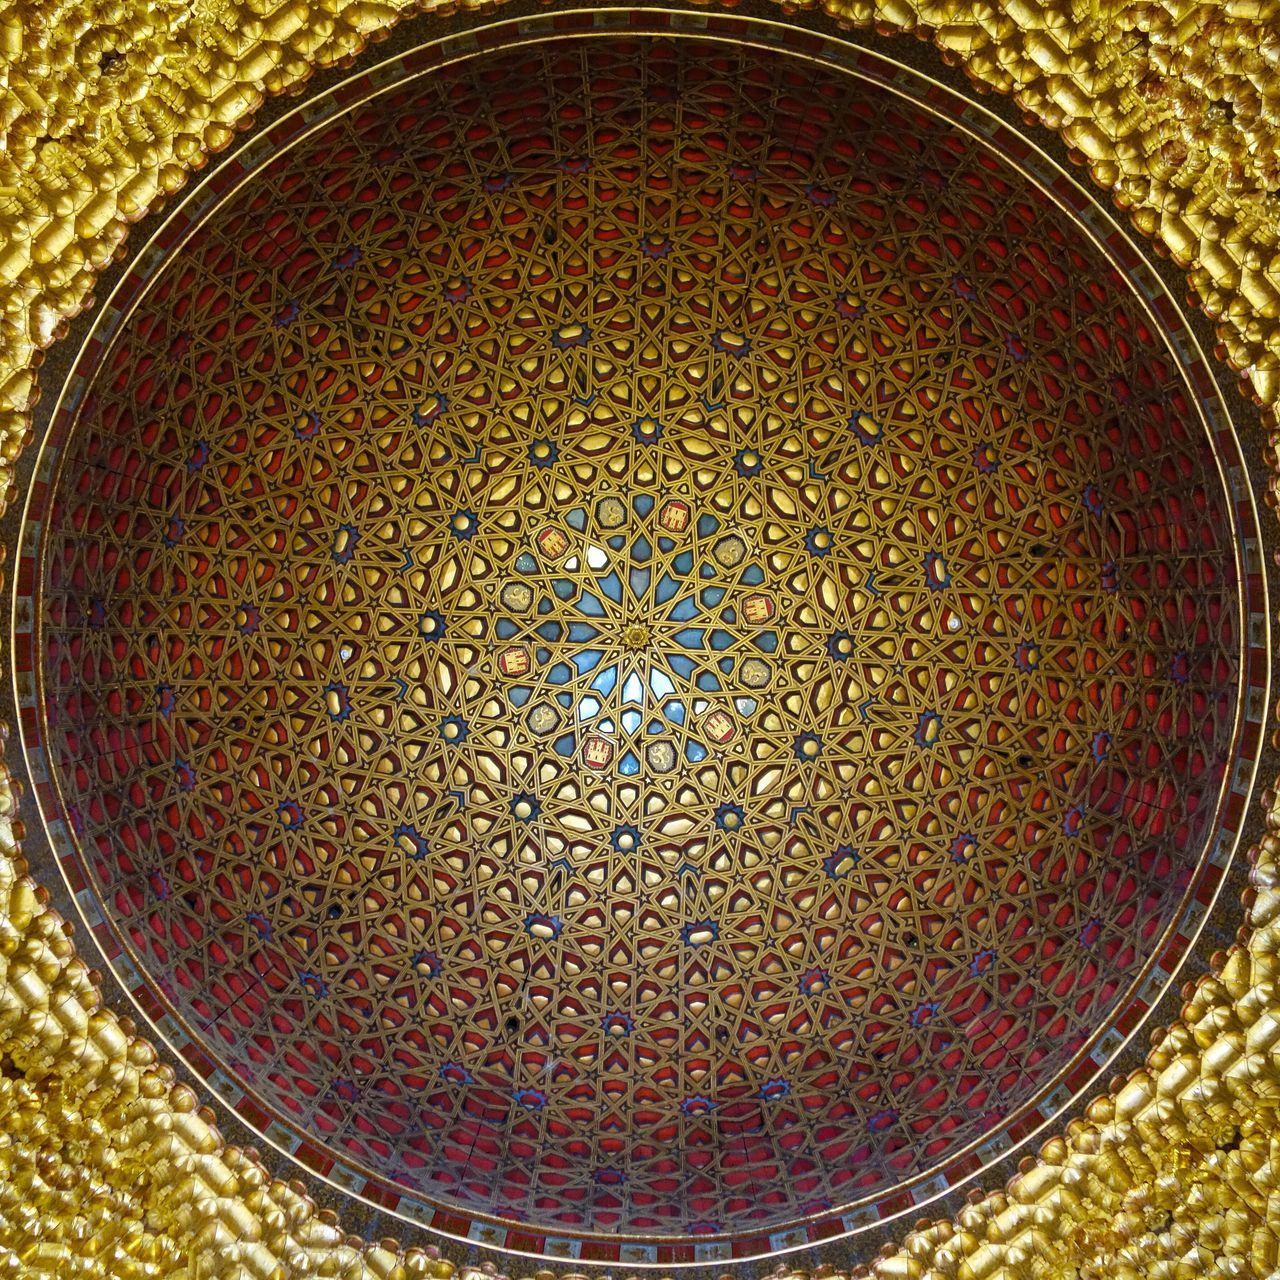 Pattern Design Gold Colored Architecture Moorish Design EyeEmNewHere España🇪🇸 SPAIN Moorish Architecture Moorish Dome Seville Sevilla Alcazar No People Travel Ceiling Ceiling Design Geometric Gold The Architect - 2017 EyeEm Awards